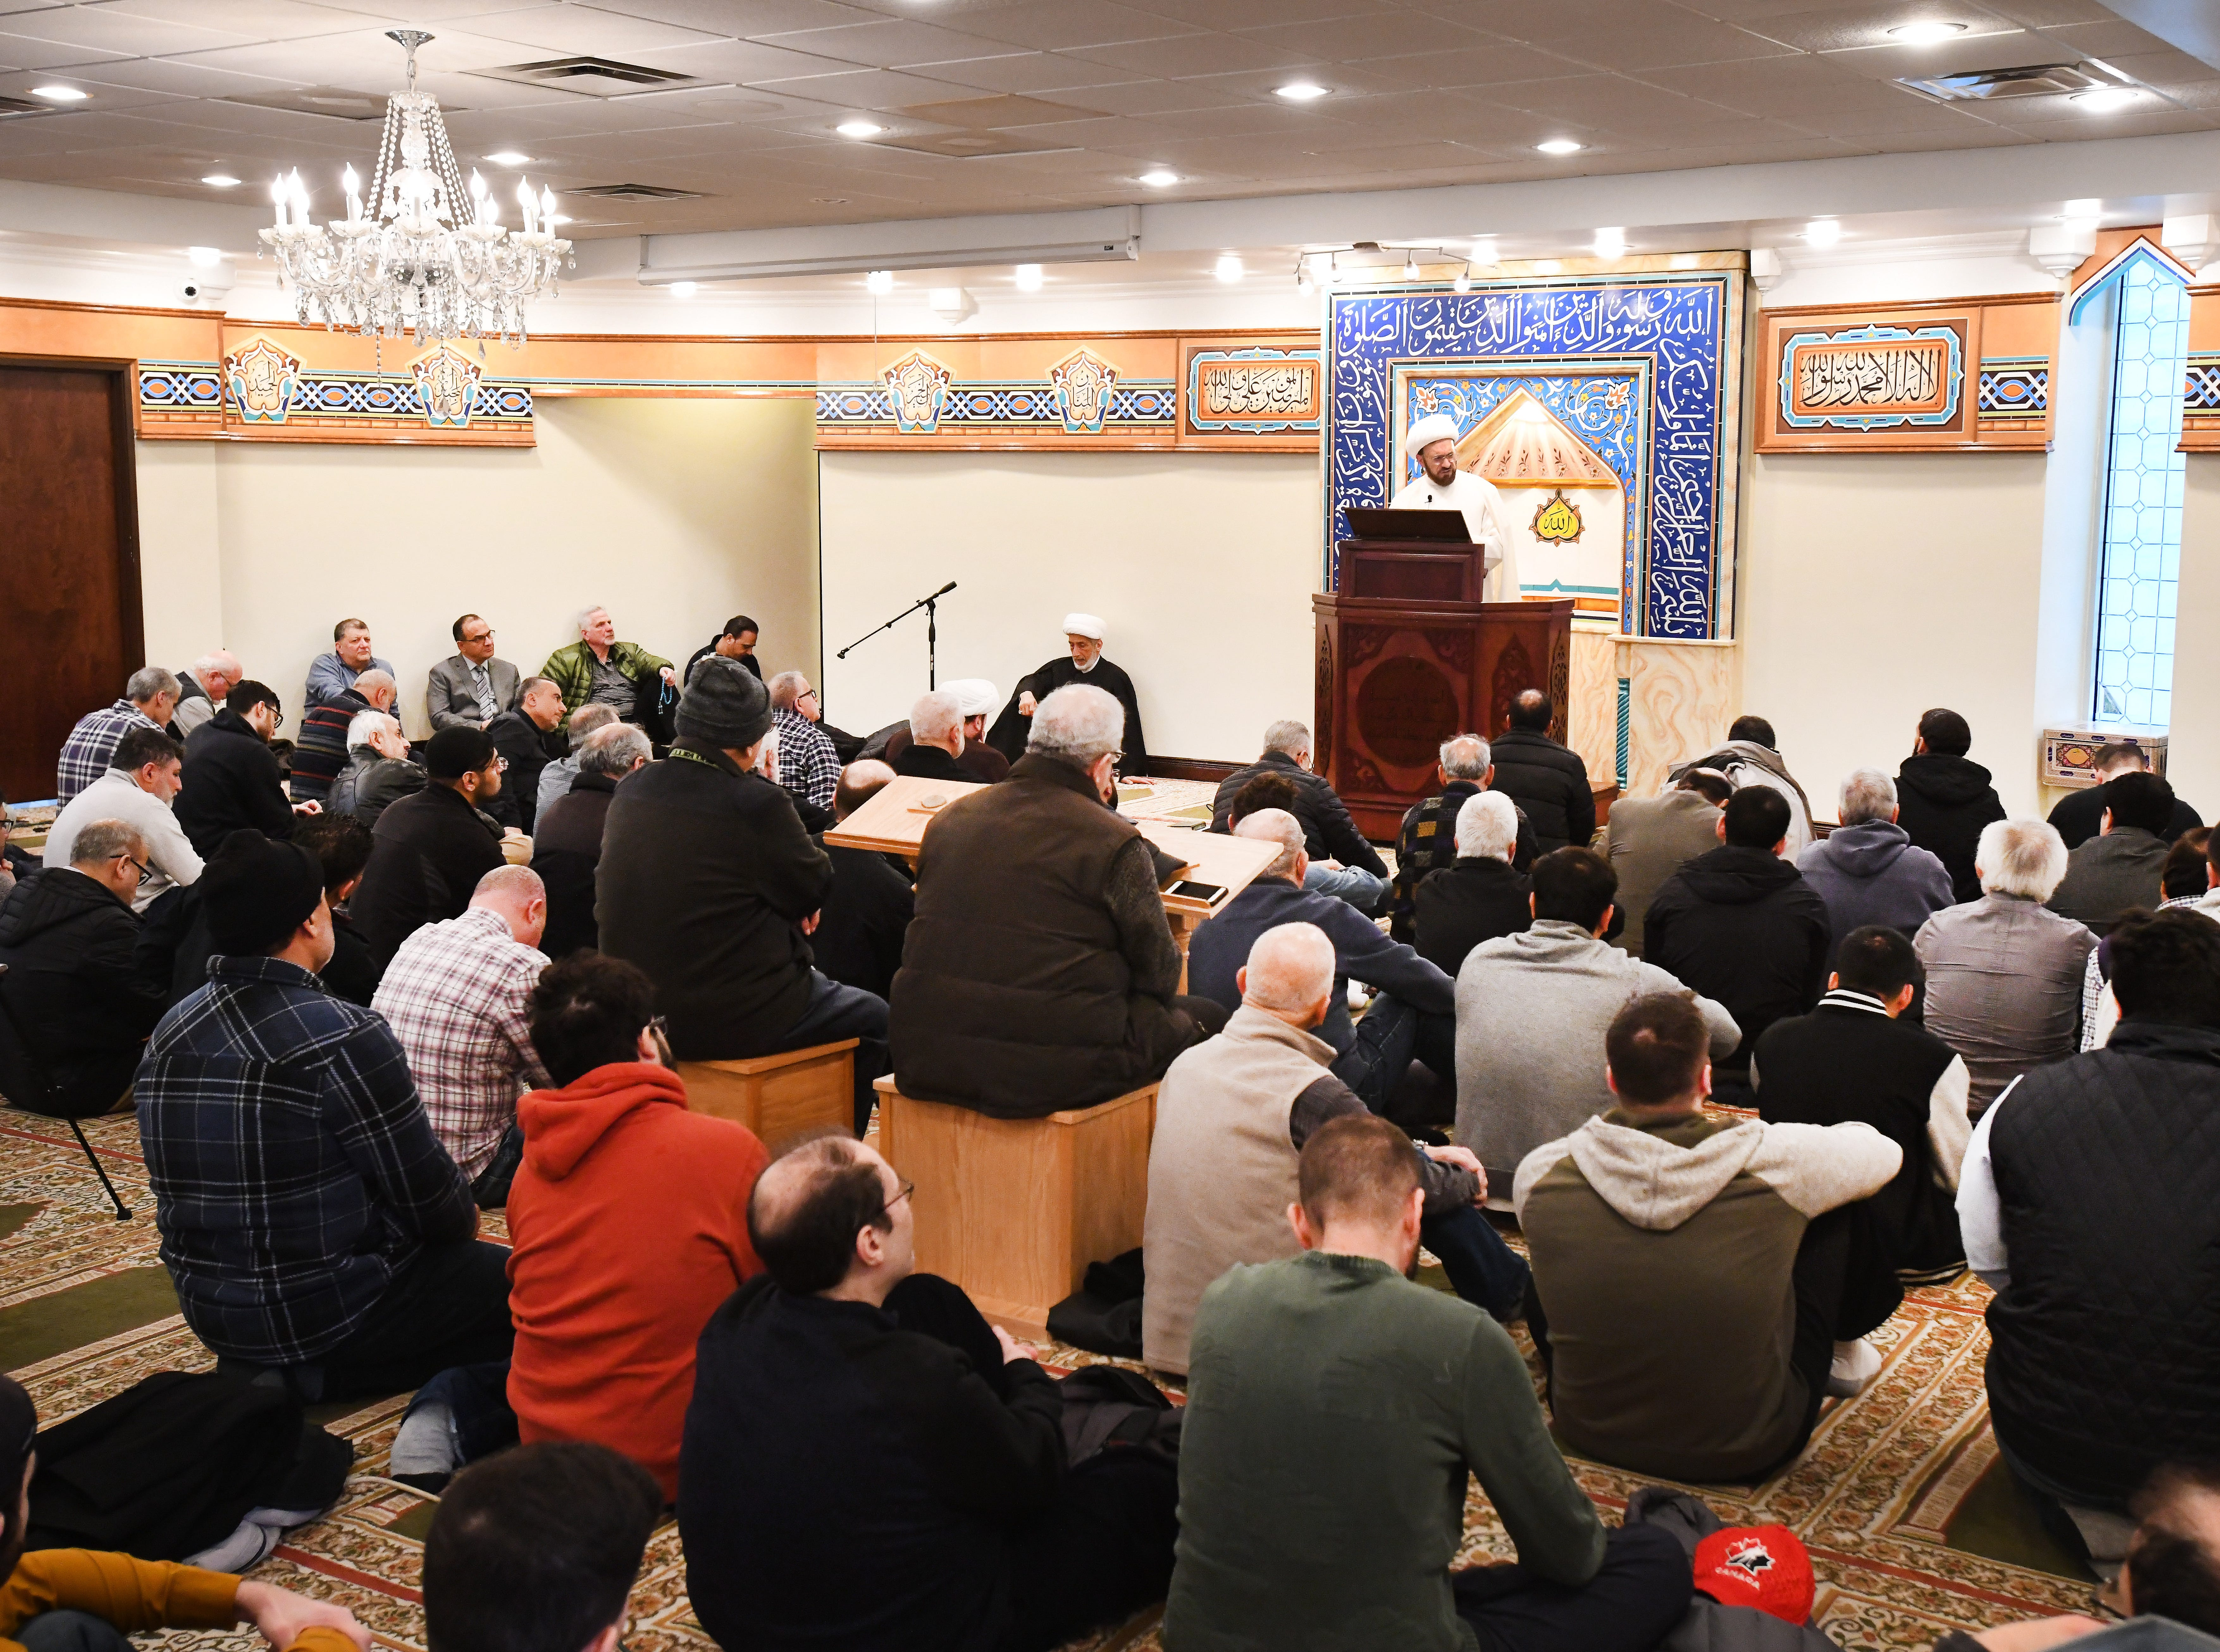 Imam Mohammad Ali Elahi talks about the New Zealand mosque massacre during a prayer service at the Islamic House of Wisdom in Dearborn Heights Friday.